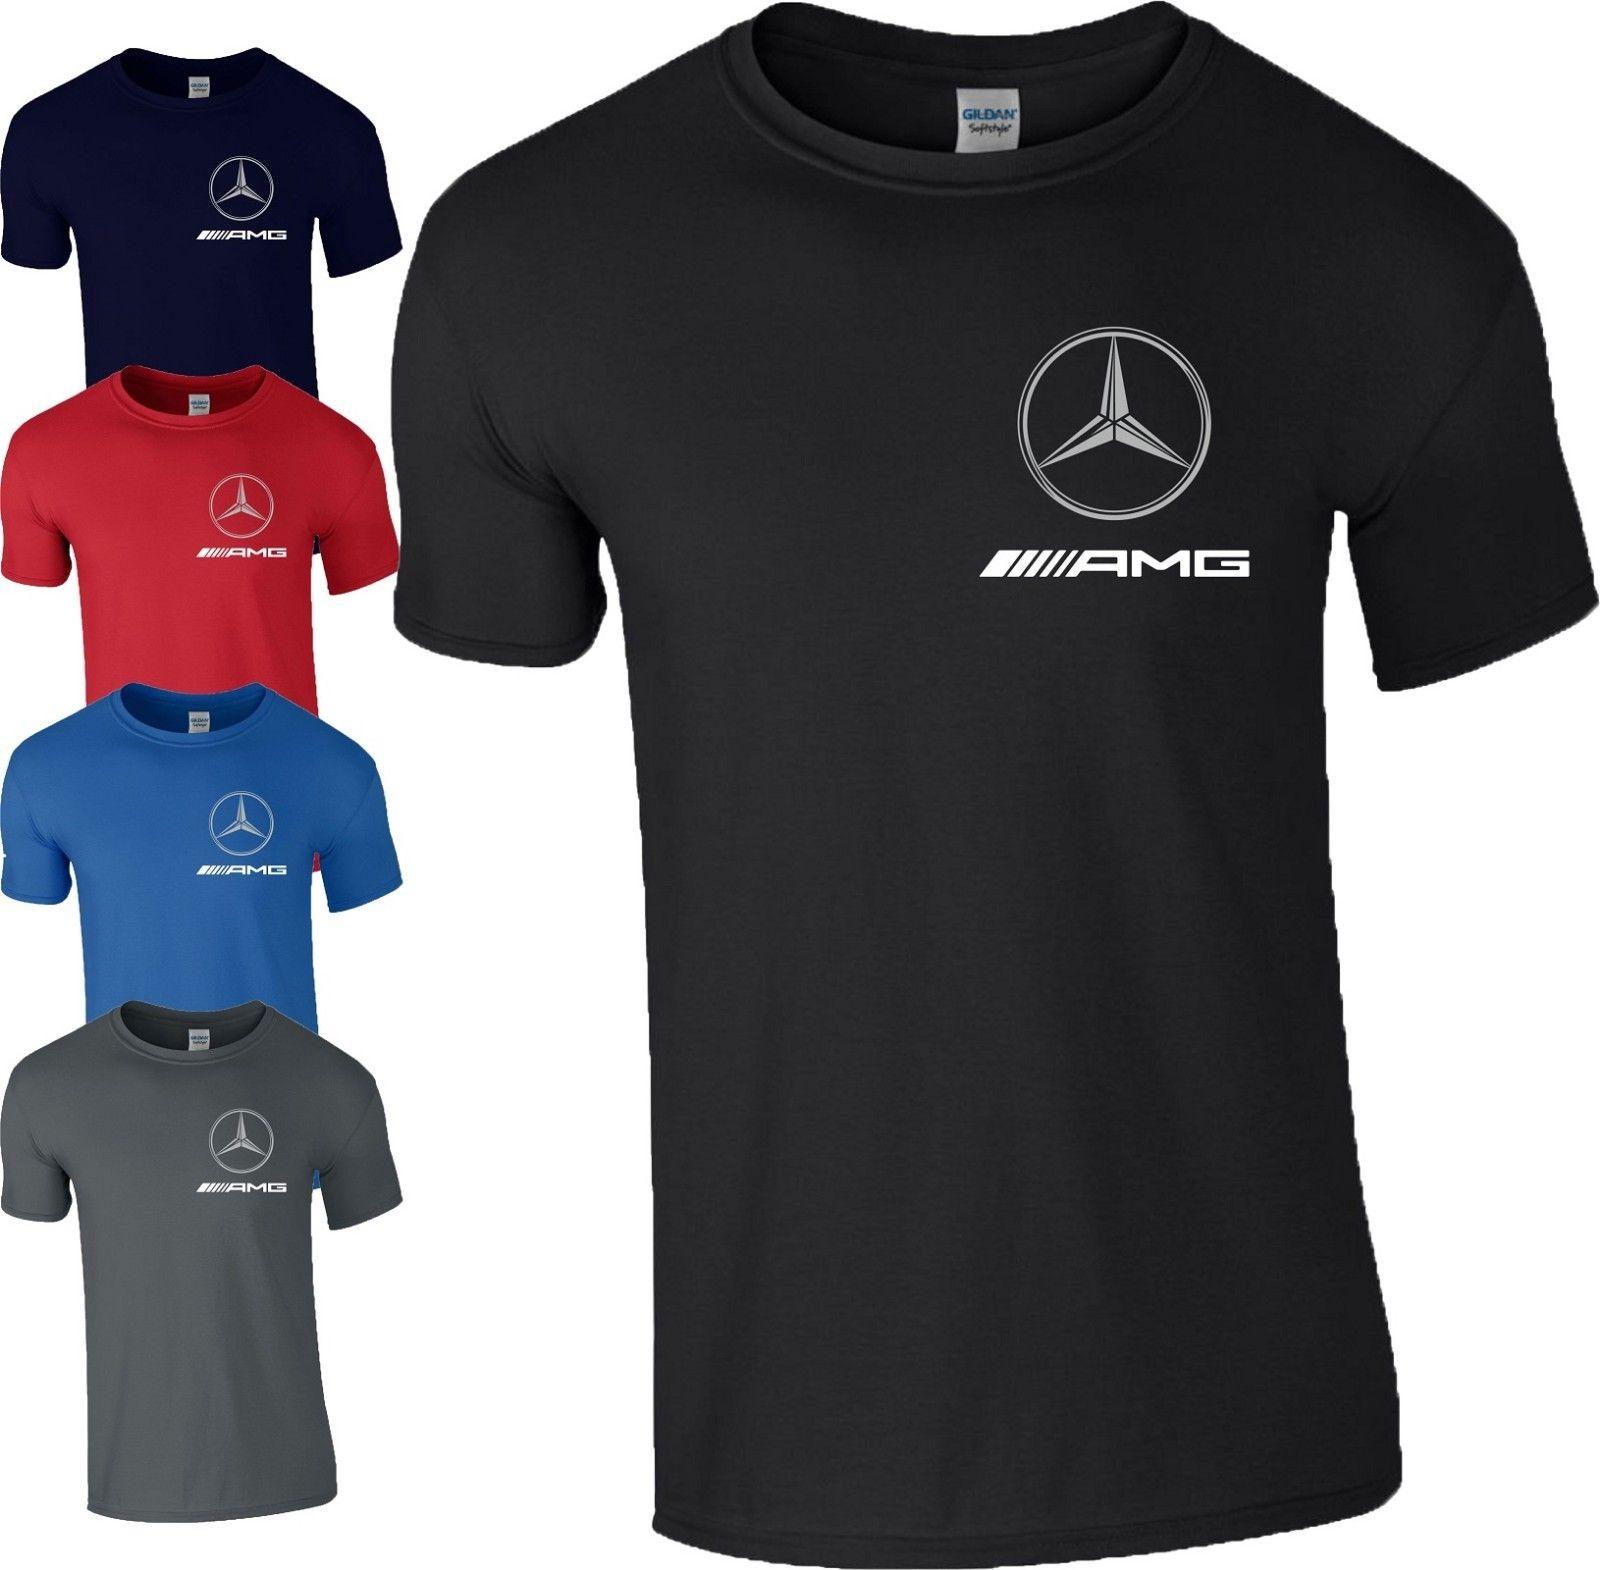 variousstyles stylish design dependable performance Mercedes AMG Logo T Shirt Formula F1 MotoGP Motorsport Racing Mens Ladies  Gift Funny Unisex Casual Cool Funny Shirts One Day Shirts From ...